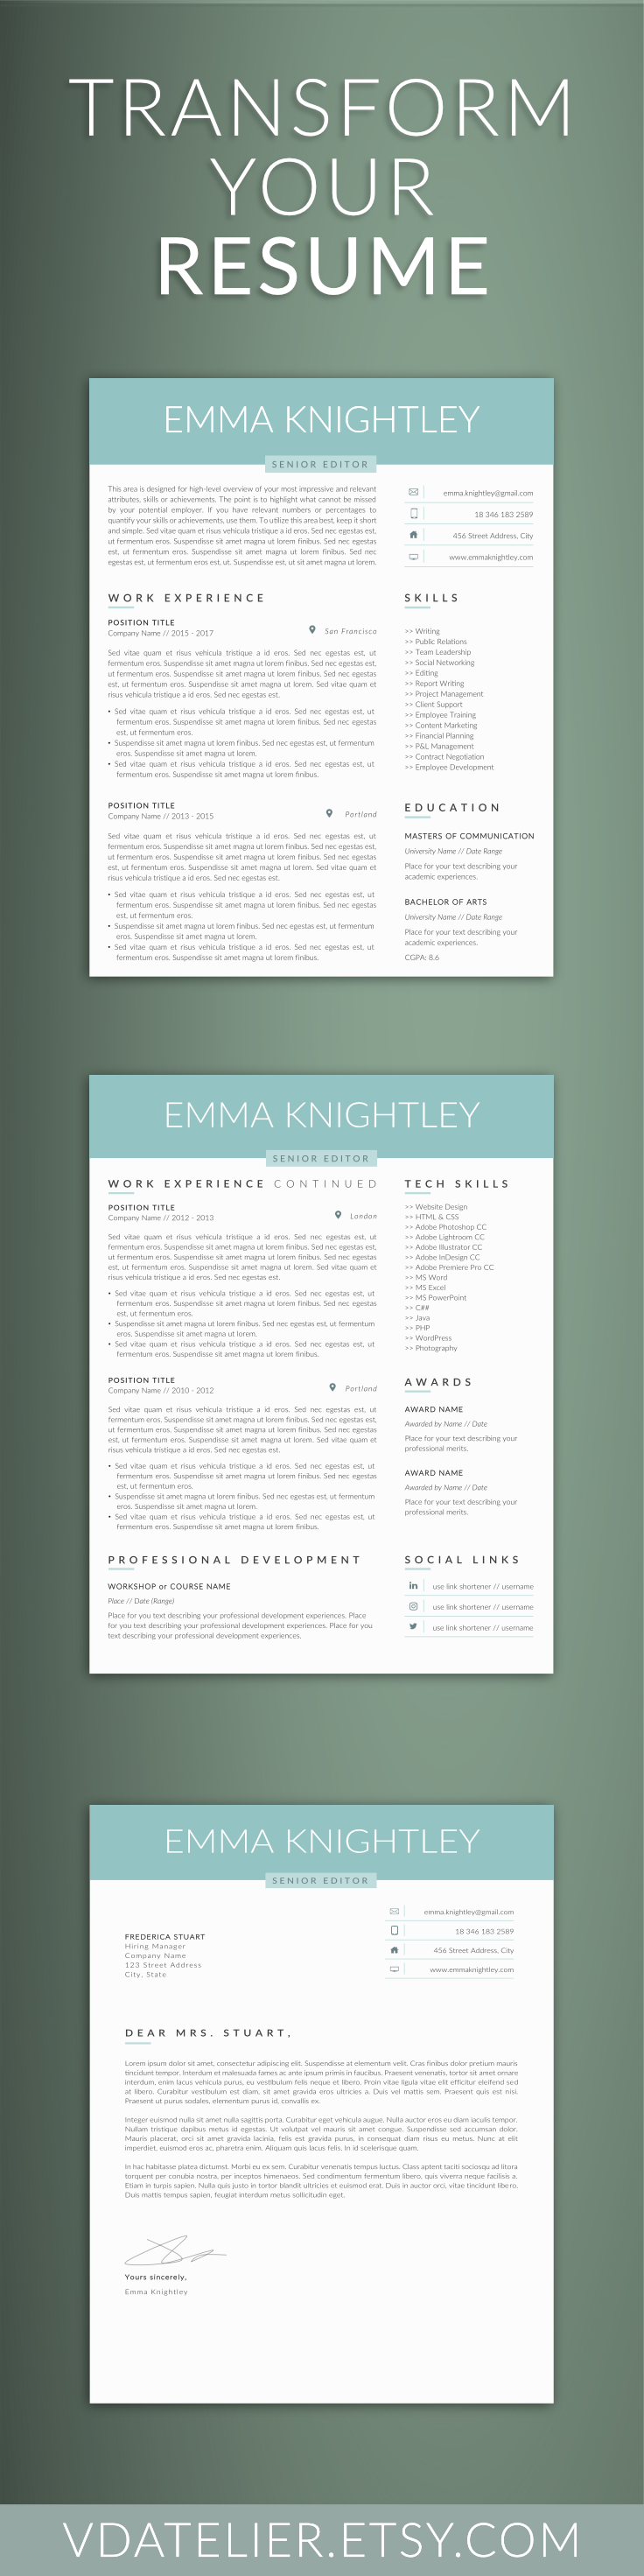 Professional Resume Template 5 Pages | Modern Resume Template For